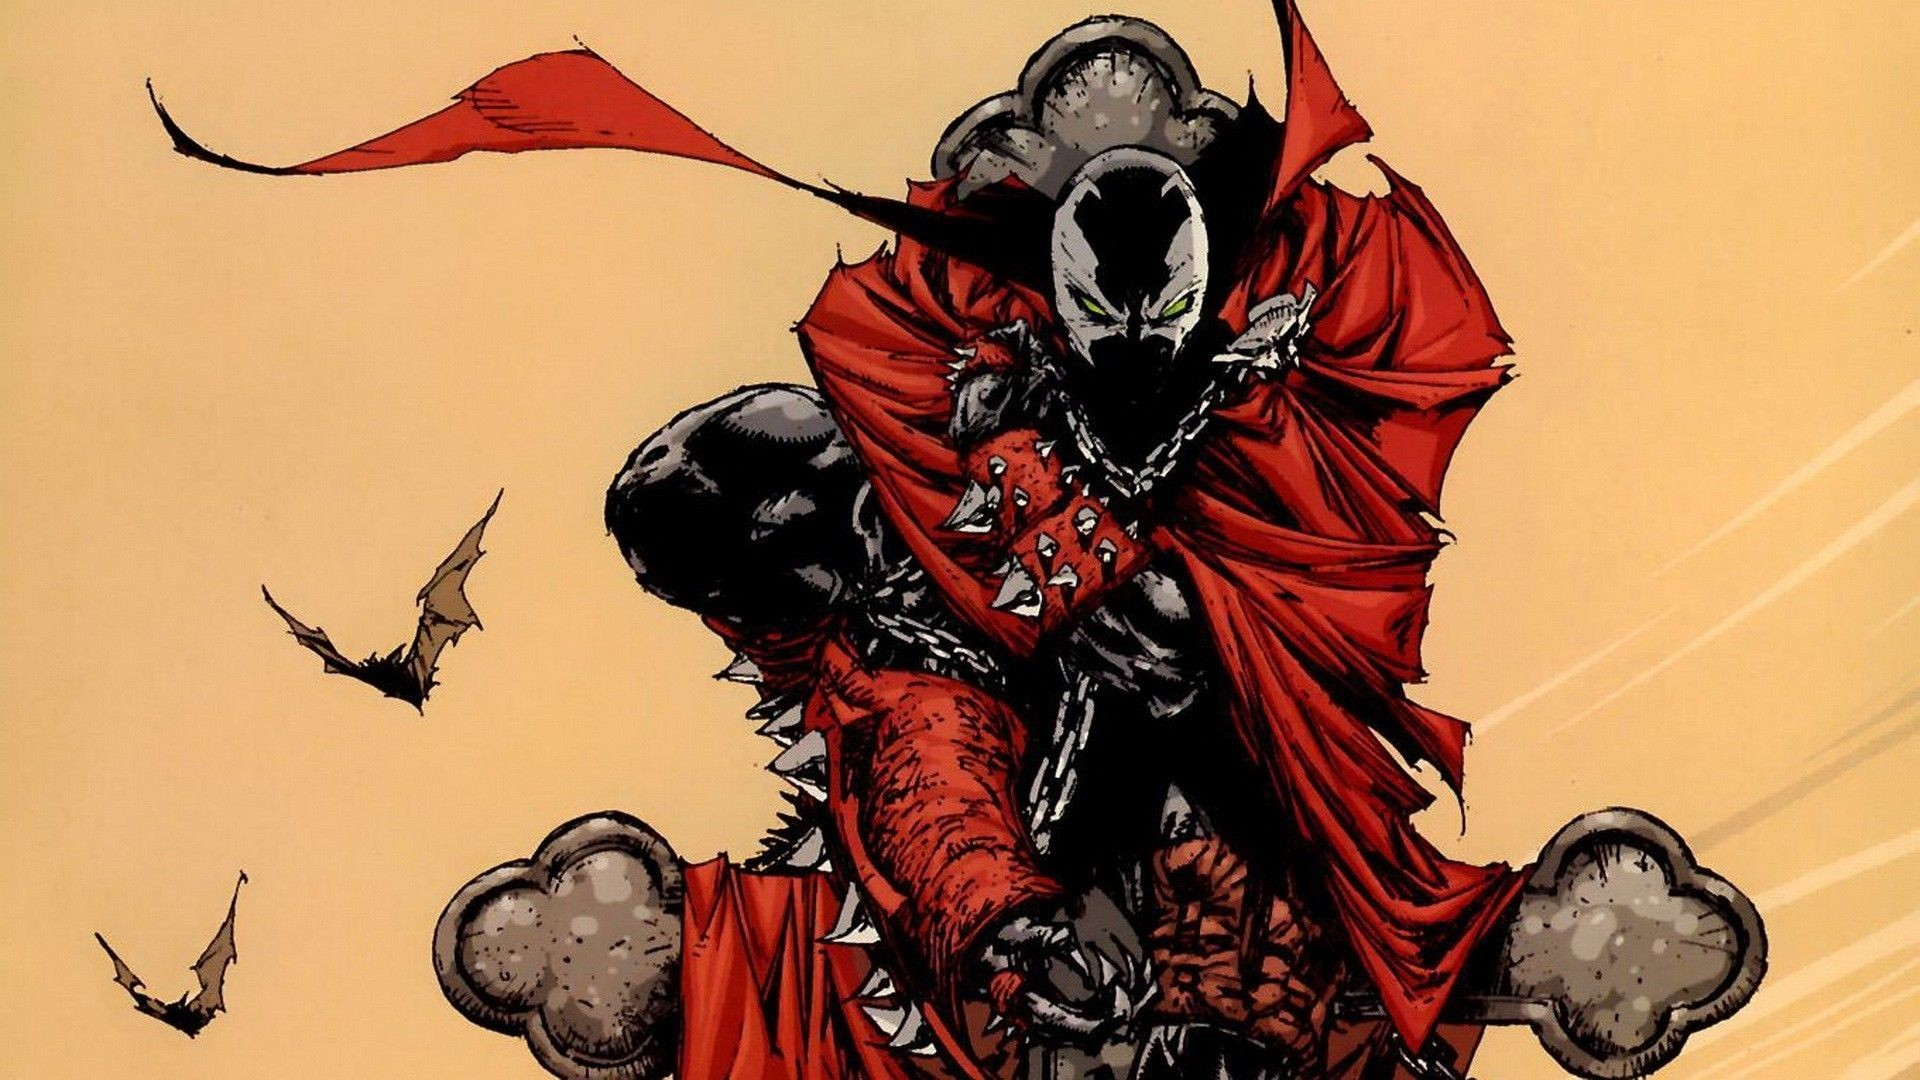 Res: 1920x1080, Rumours of Upcoming Spawn Film Come to Light | CGMagazine